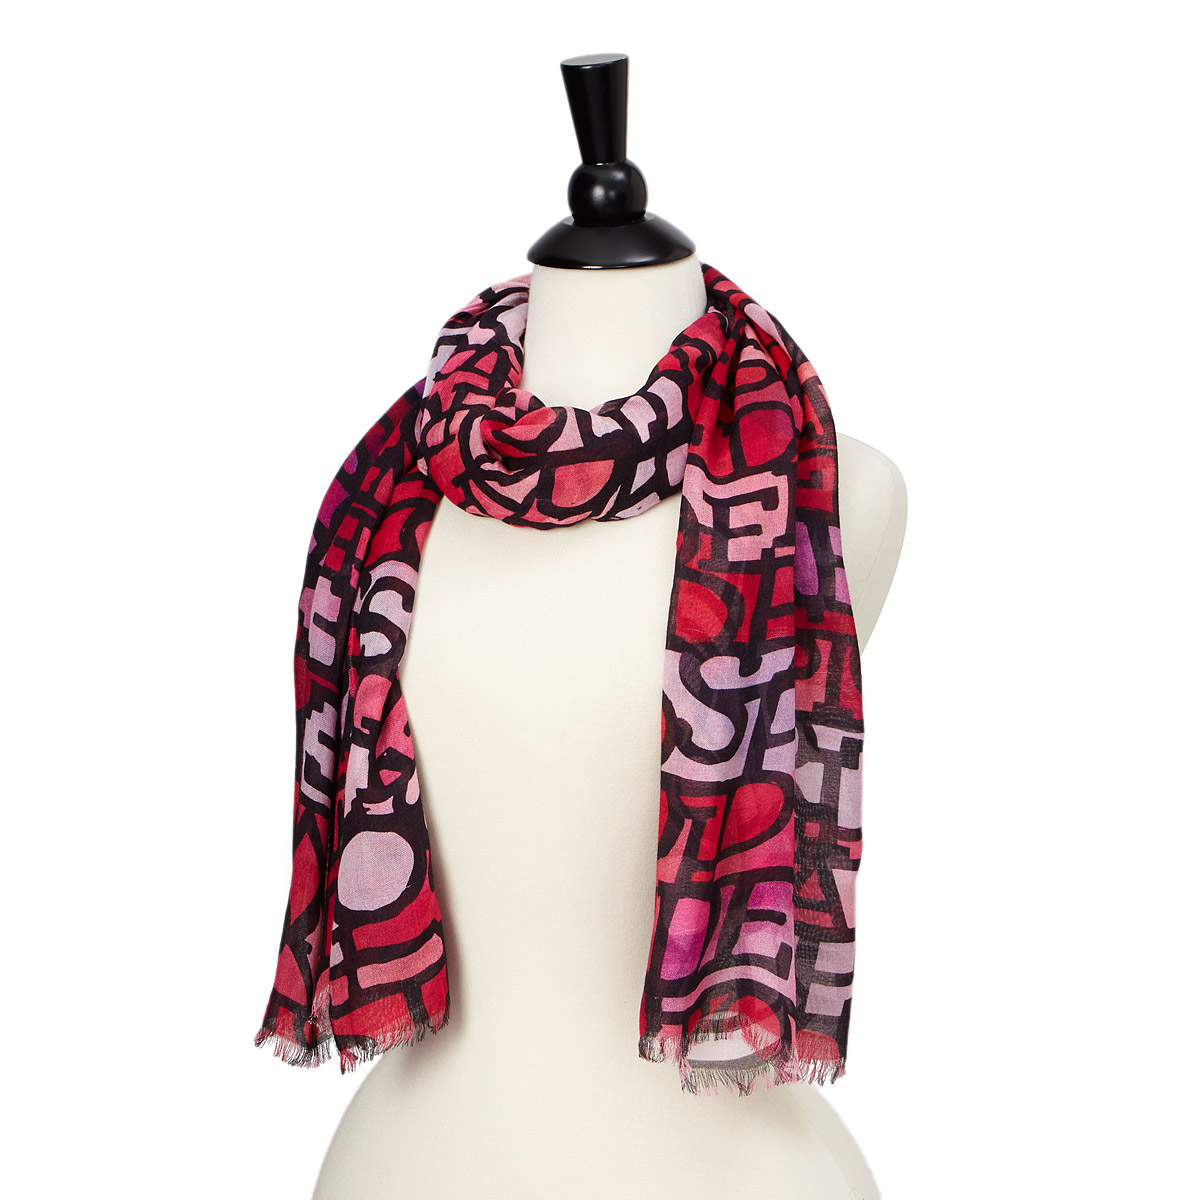 Inspirational Scarf - Passion